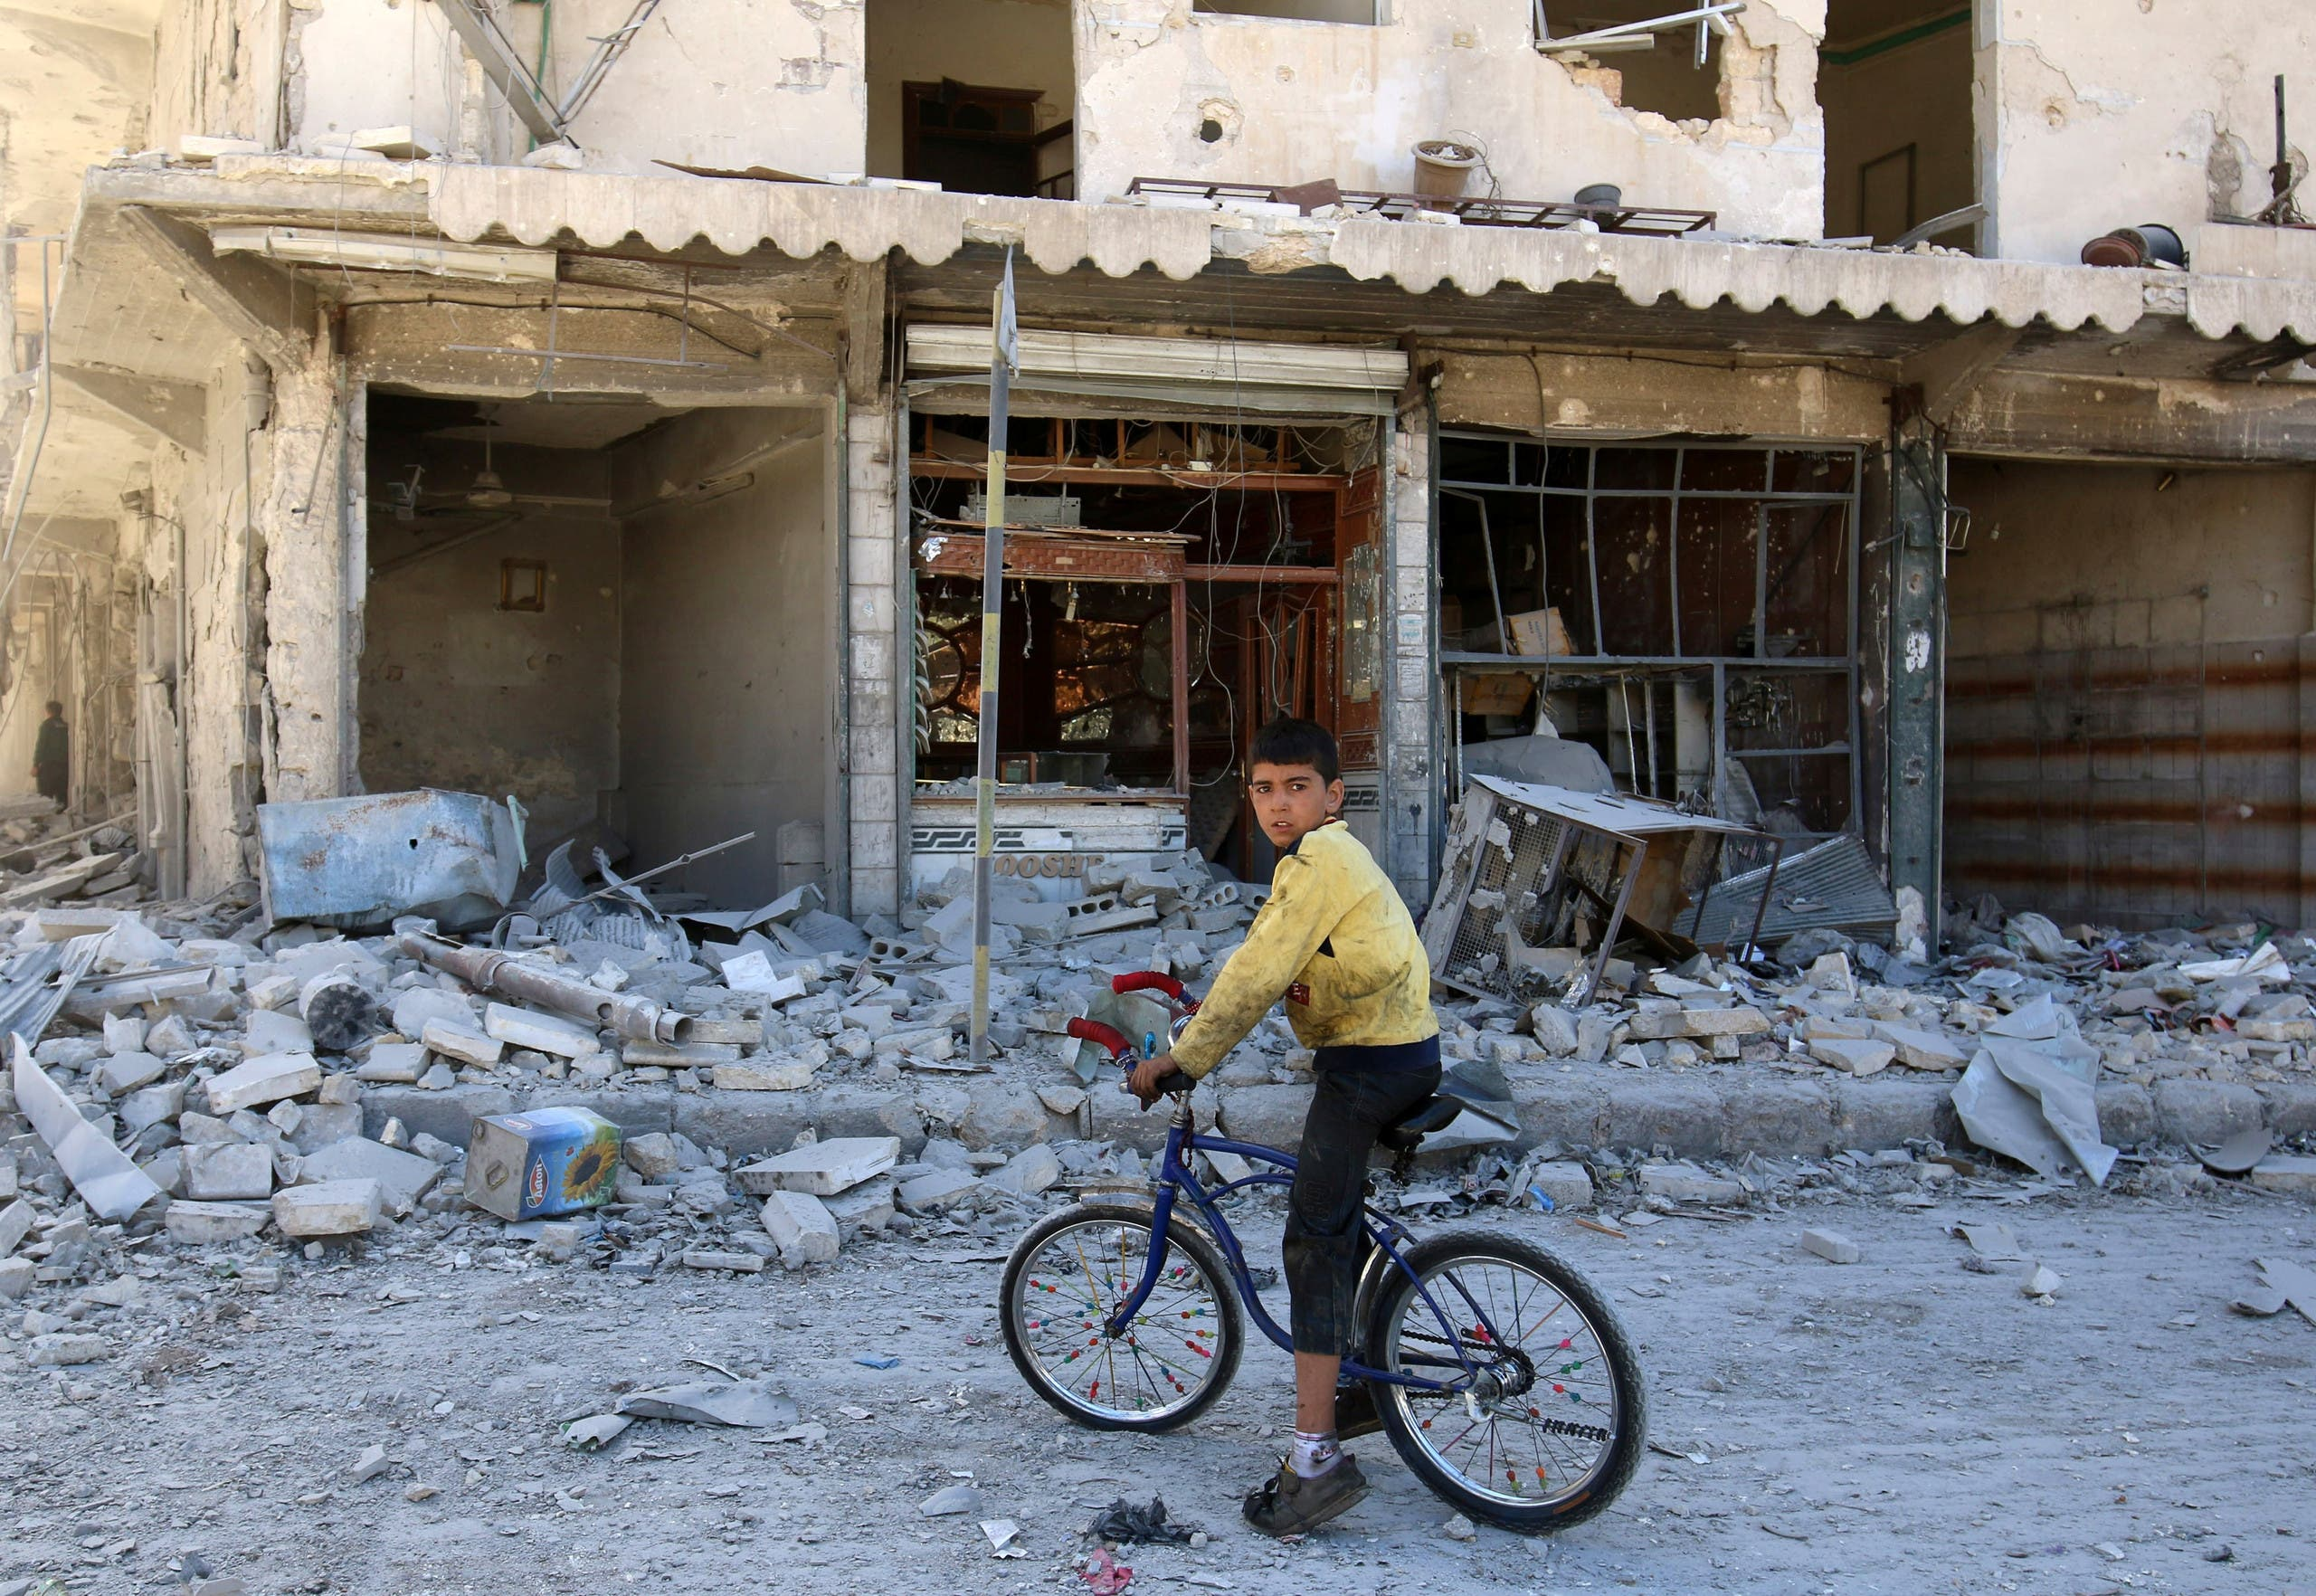 A boy sits on a bicycle in front of damaged shops after an airstrike on the rebel held al-Qaterji neighbourhood of Aleppo, Syria September 25, 2016. REUTERS/Abdalrhman Ismail